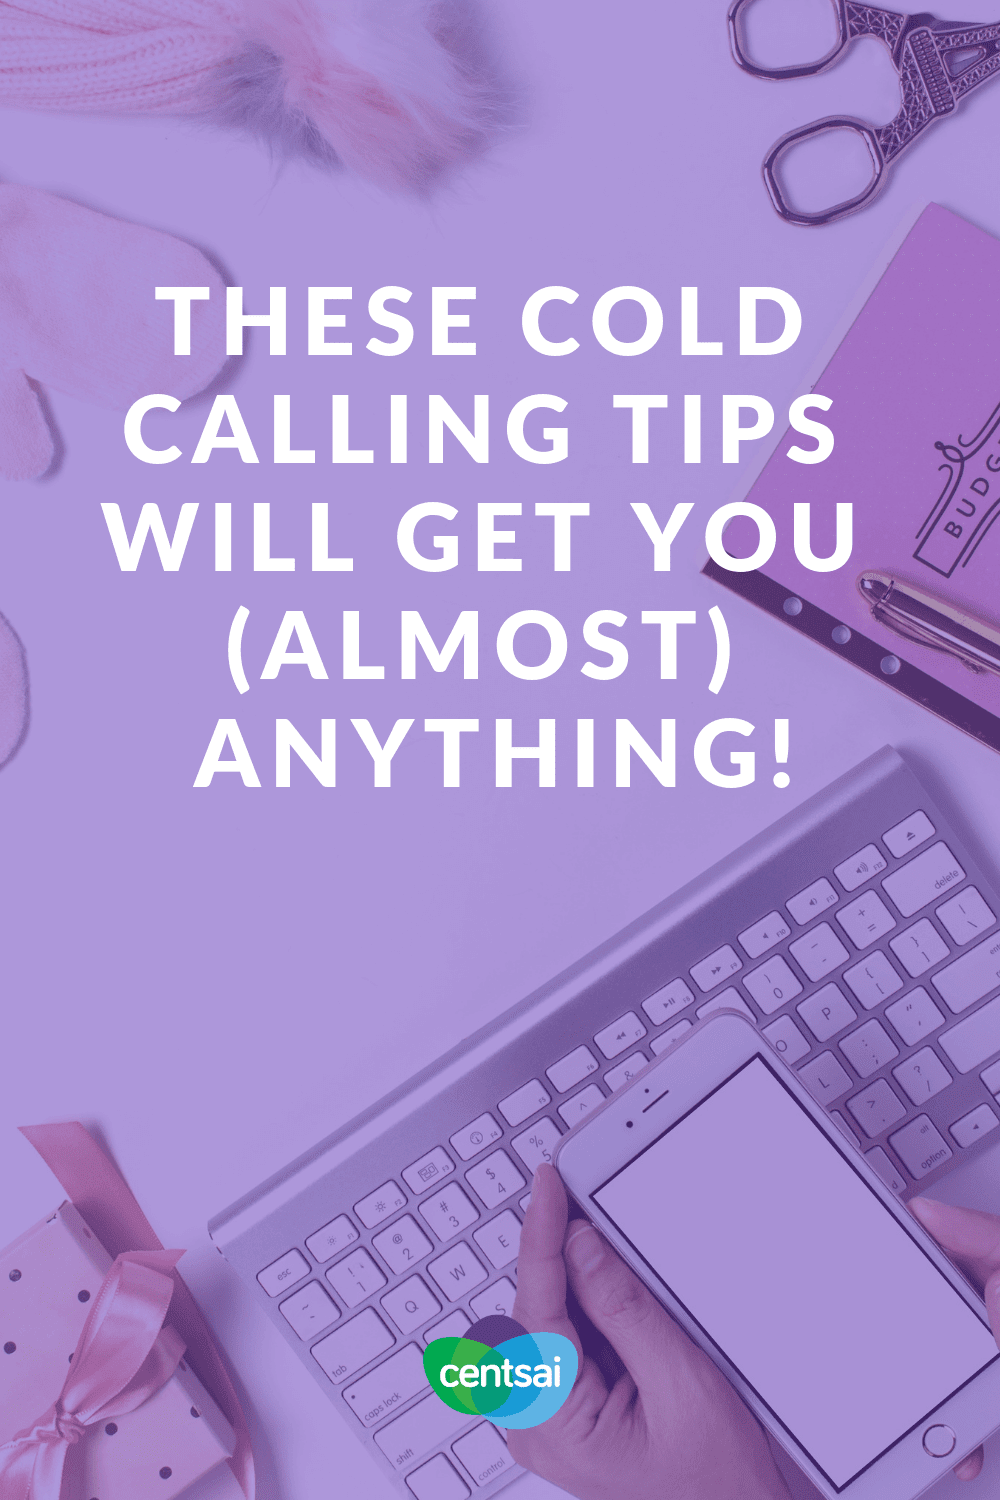 These Cold Calling Tips Will Get You (almost) Anything! Trying to get your business off the ground? Need more clients? Check out these cold calling tips to give your business the boost it needs. #coldcallingtips #business